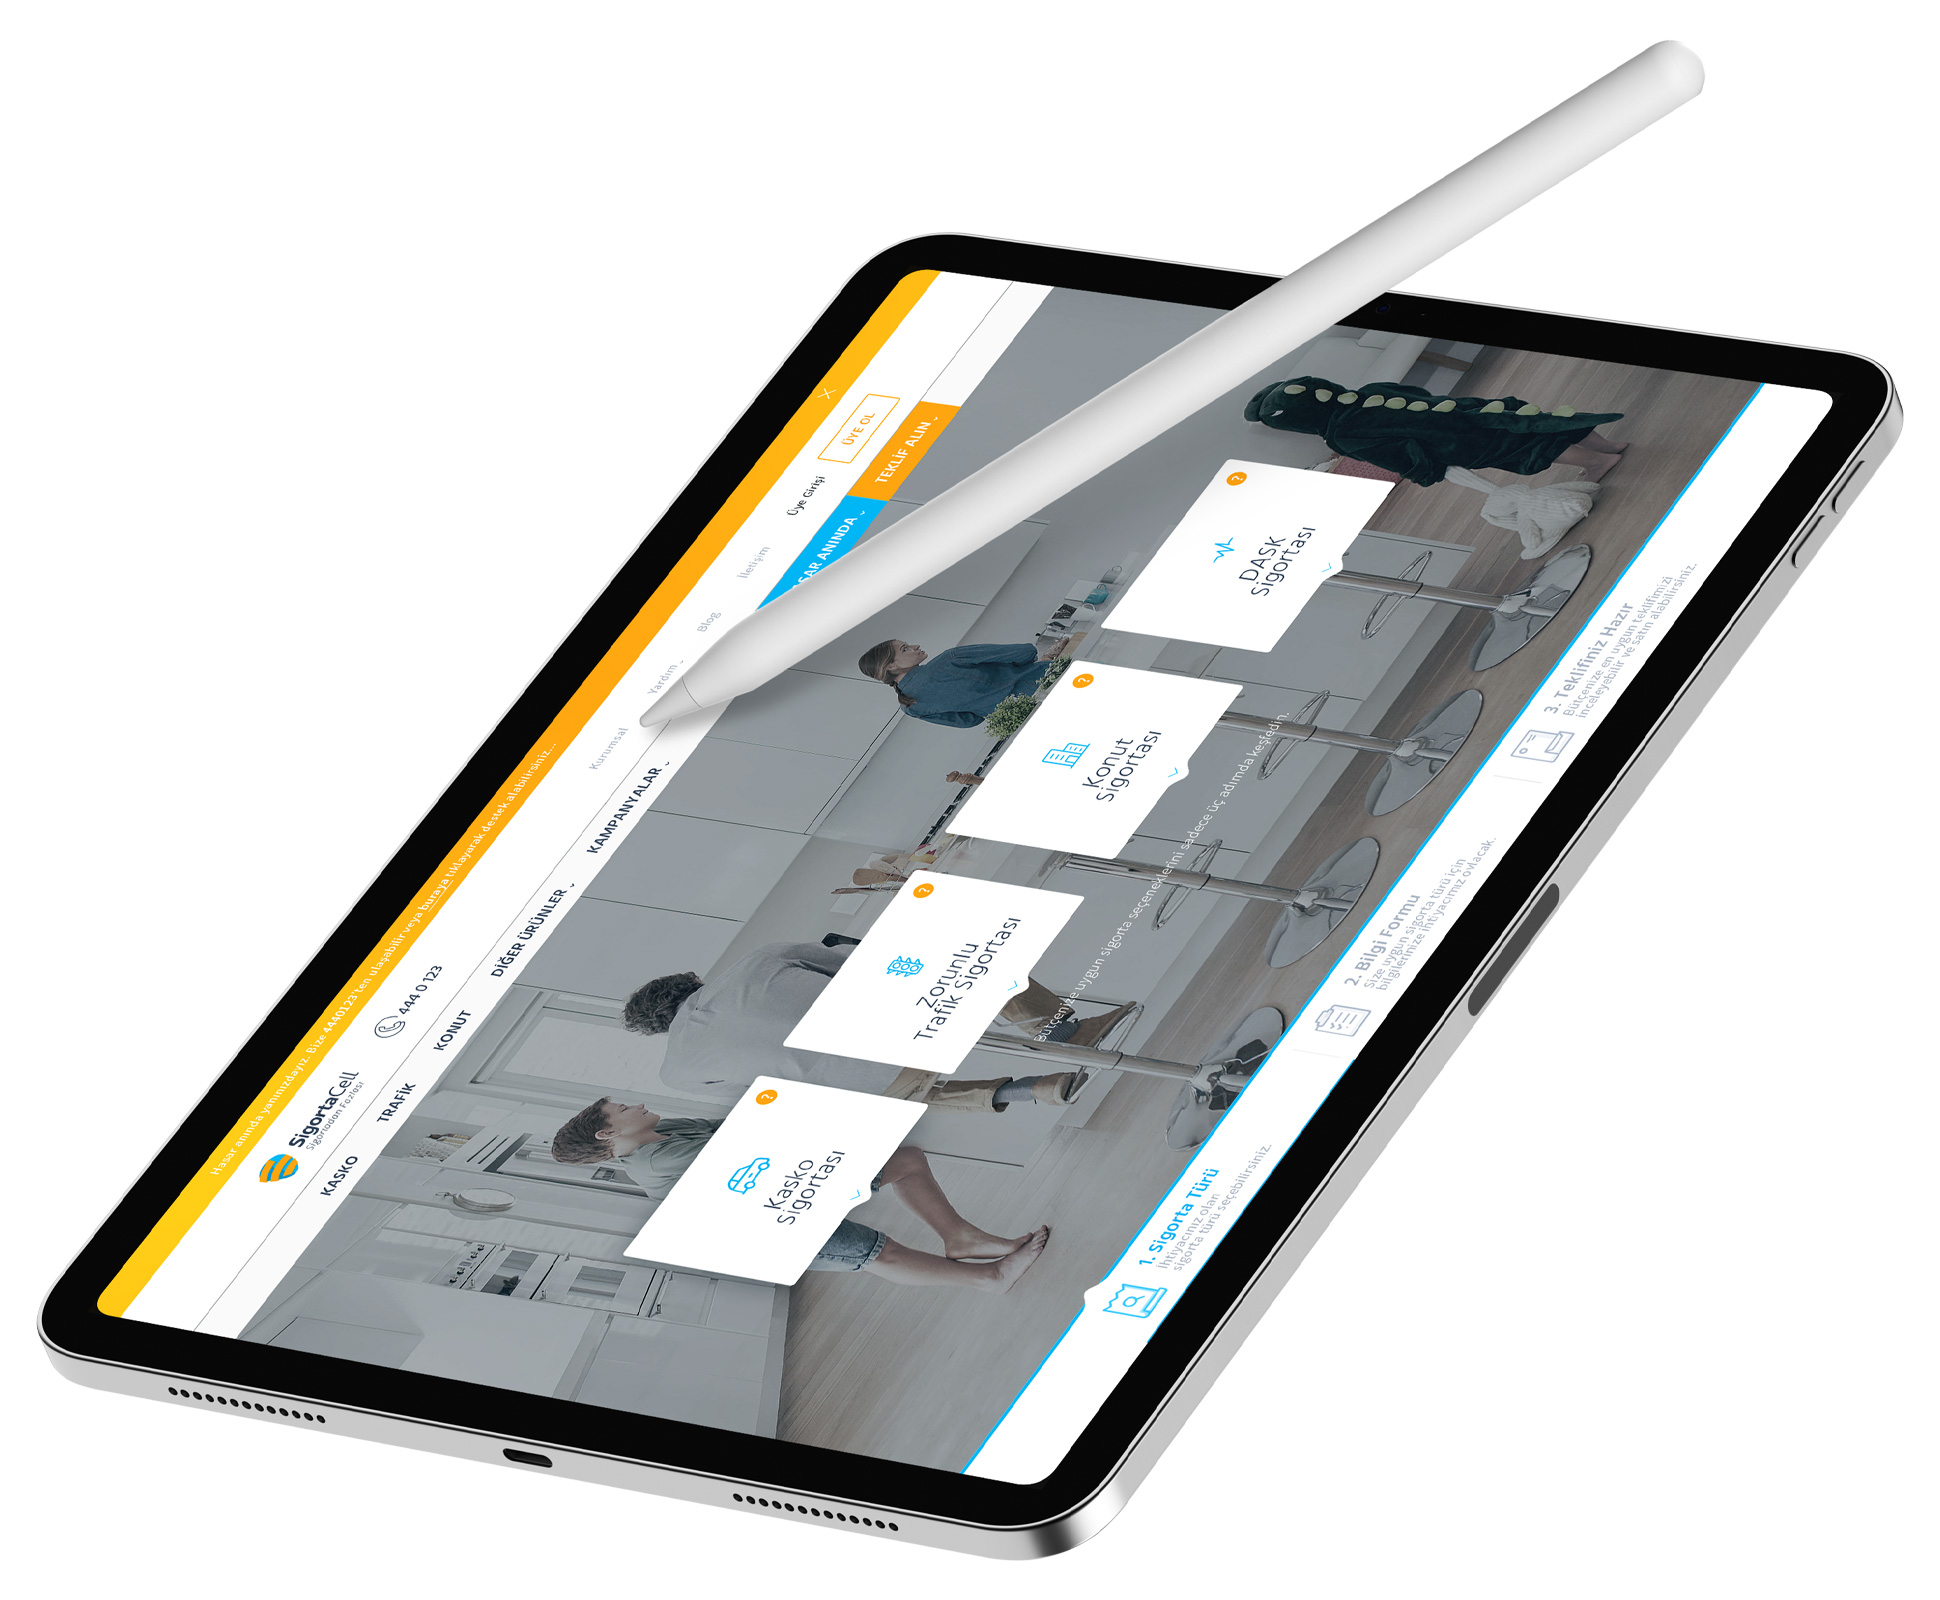 SigortaCell Tablet Responsive